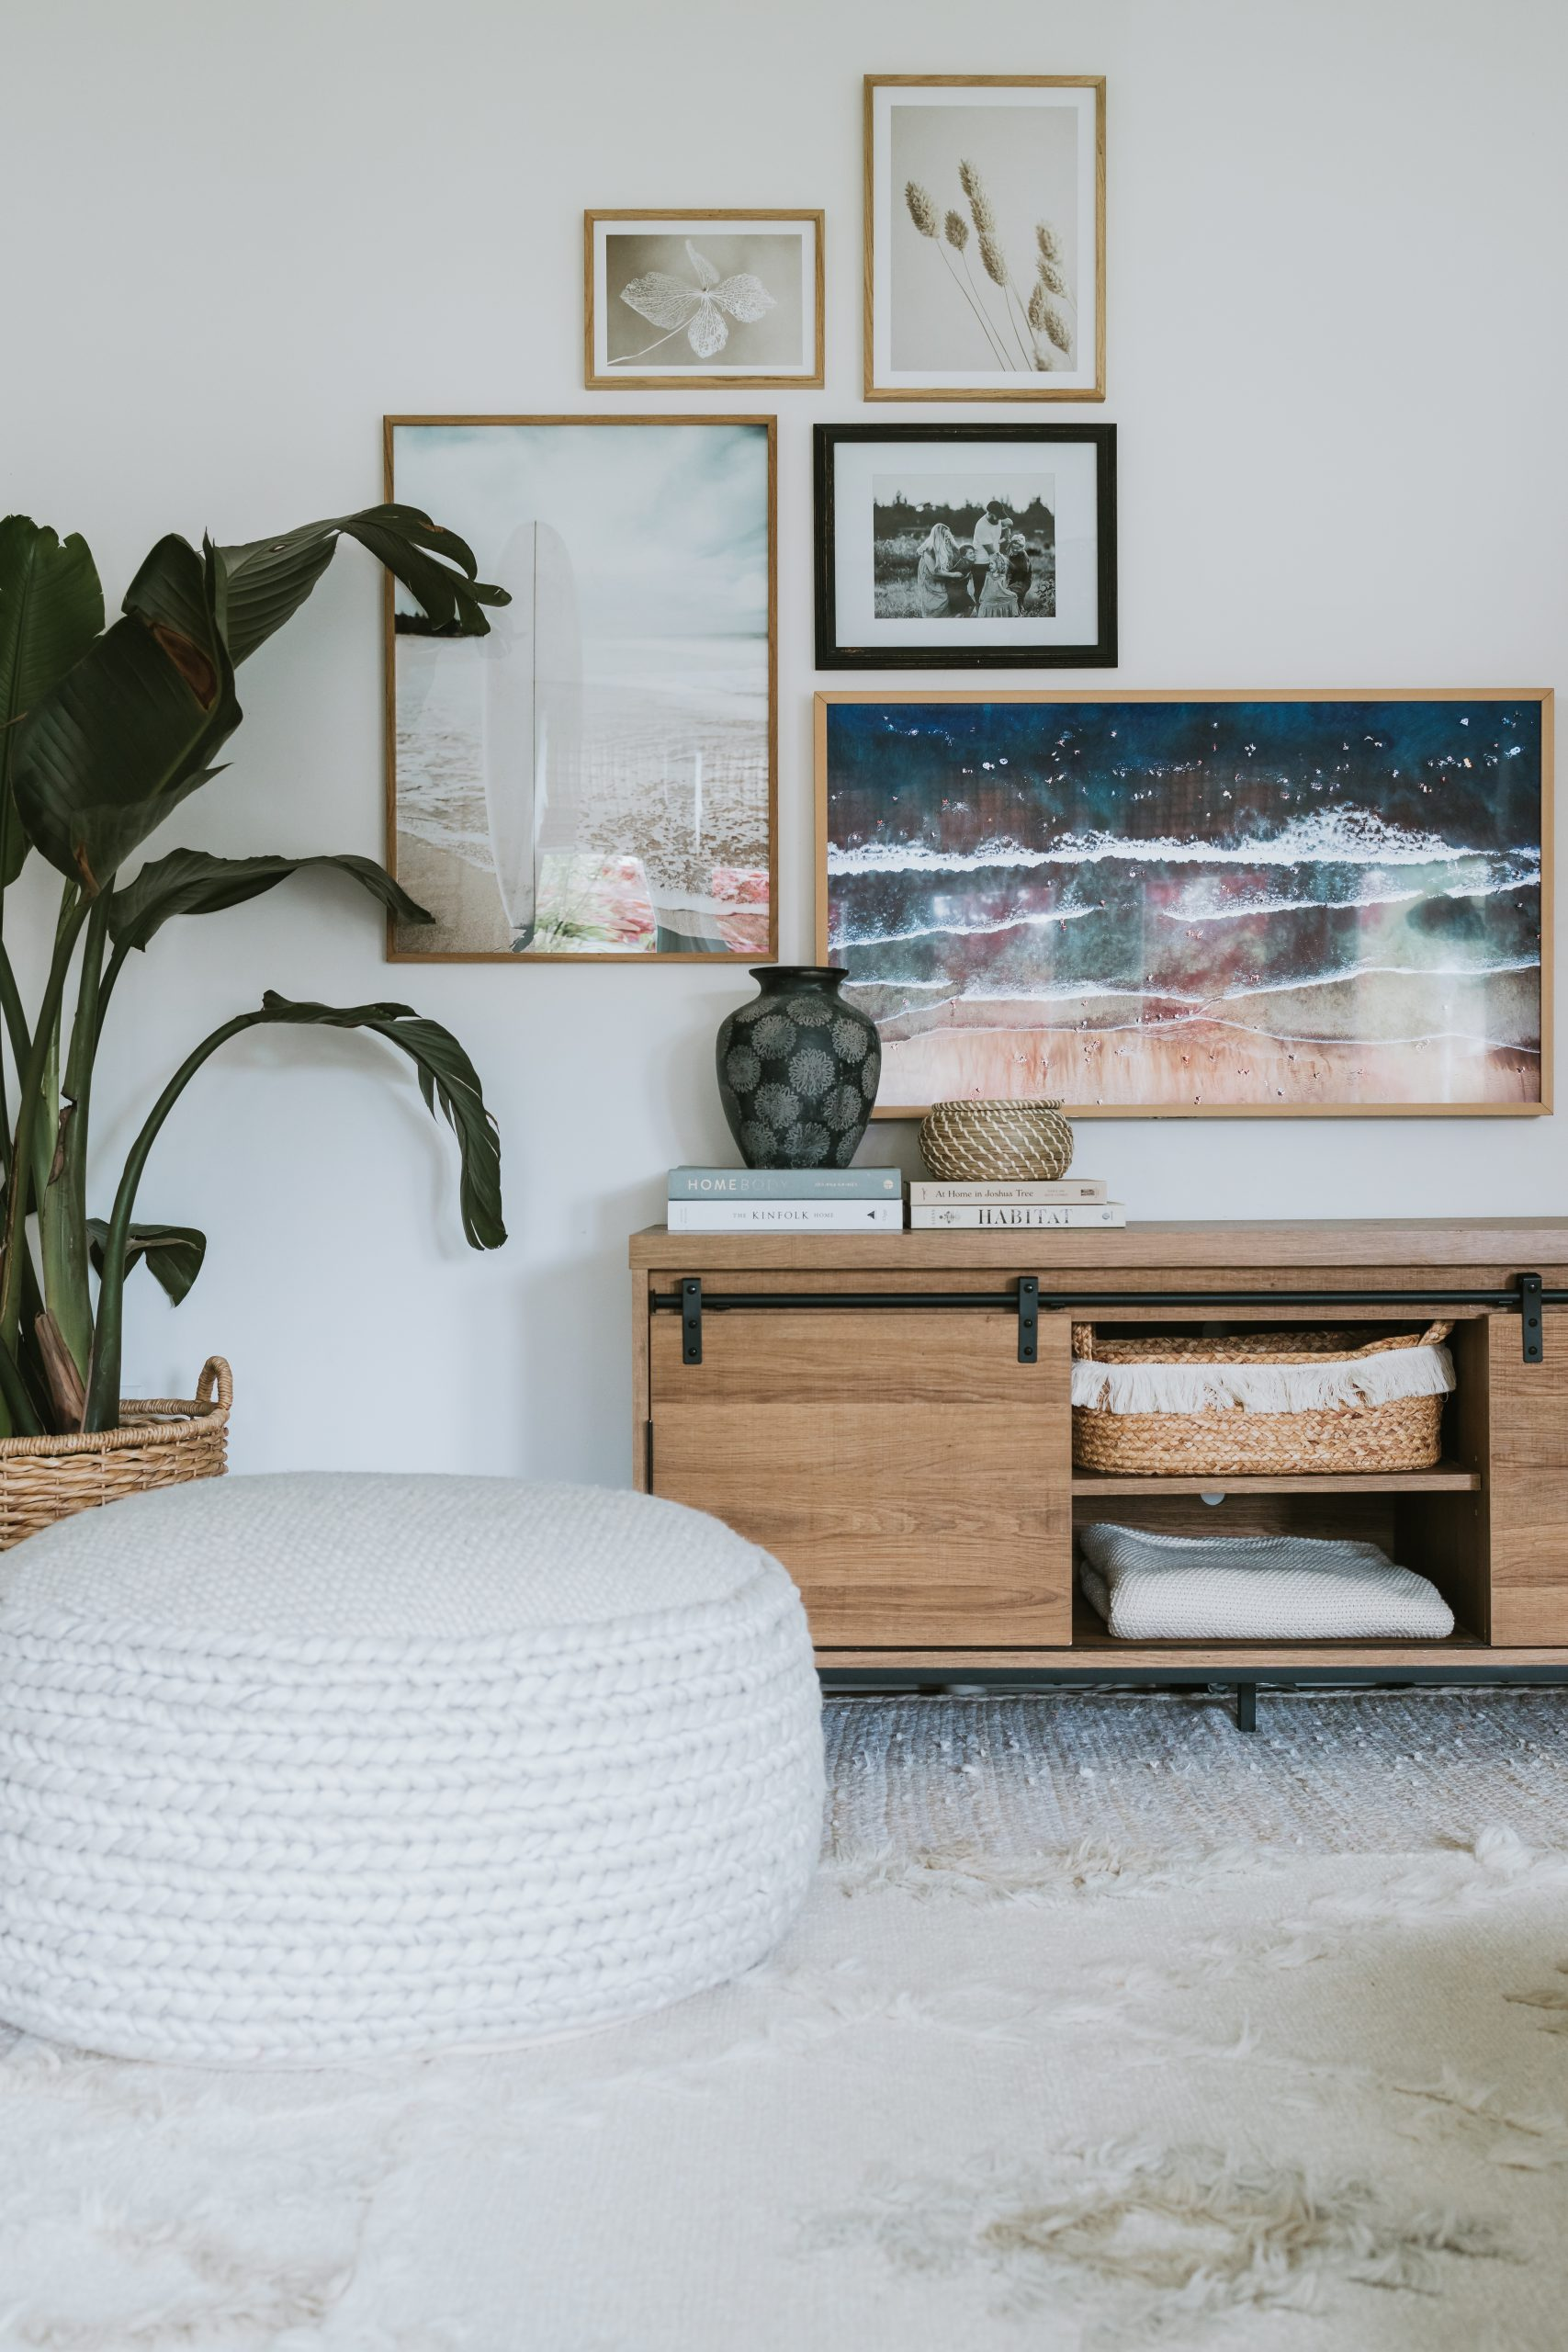 New Art and Review Of The Samsung Frame TV. Why we purchased The Samsung Frame TV. Where you can find the 2019 model on sale and why we love it.